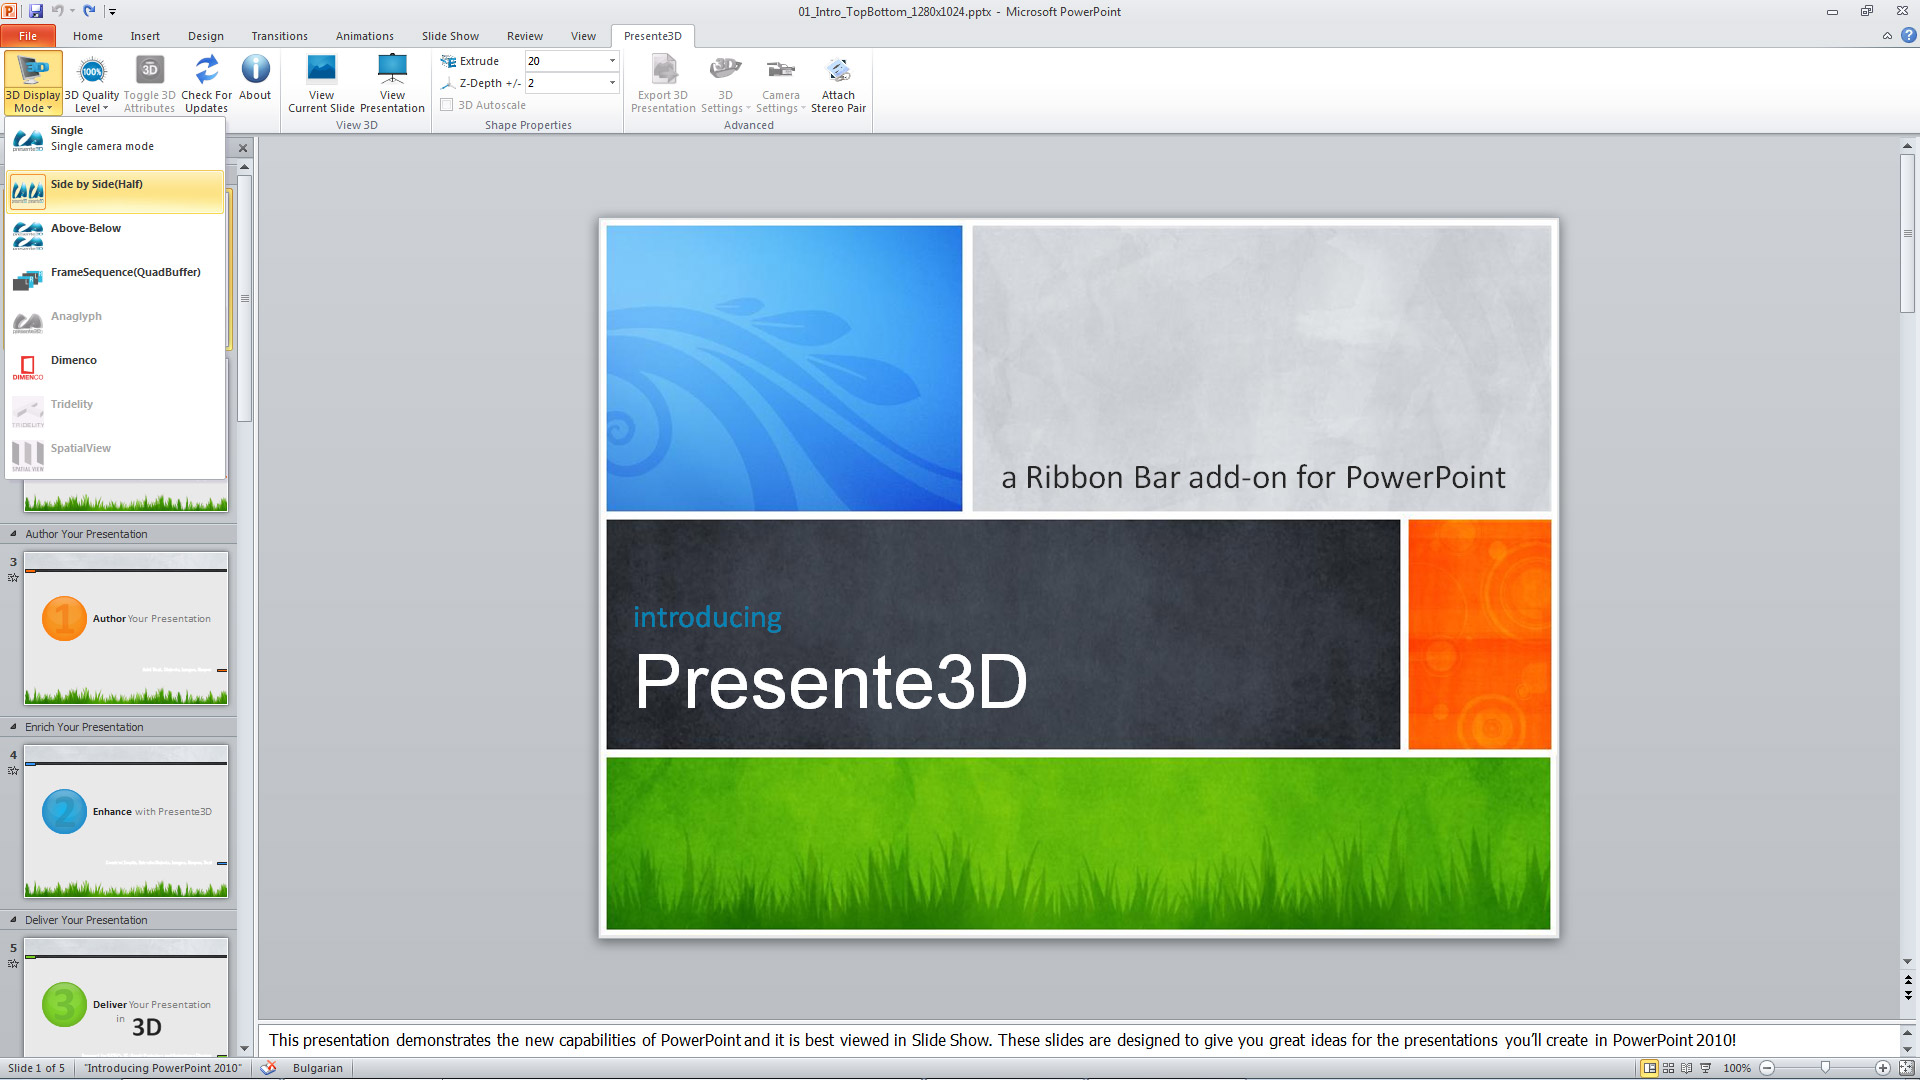 creating stereo 3d presentations in powerpoint using presente3d 3d